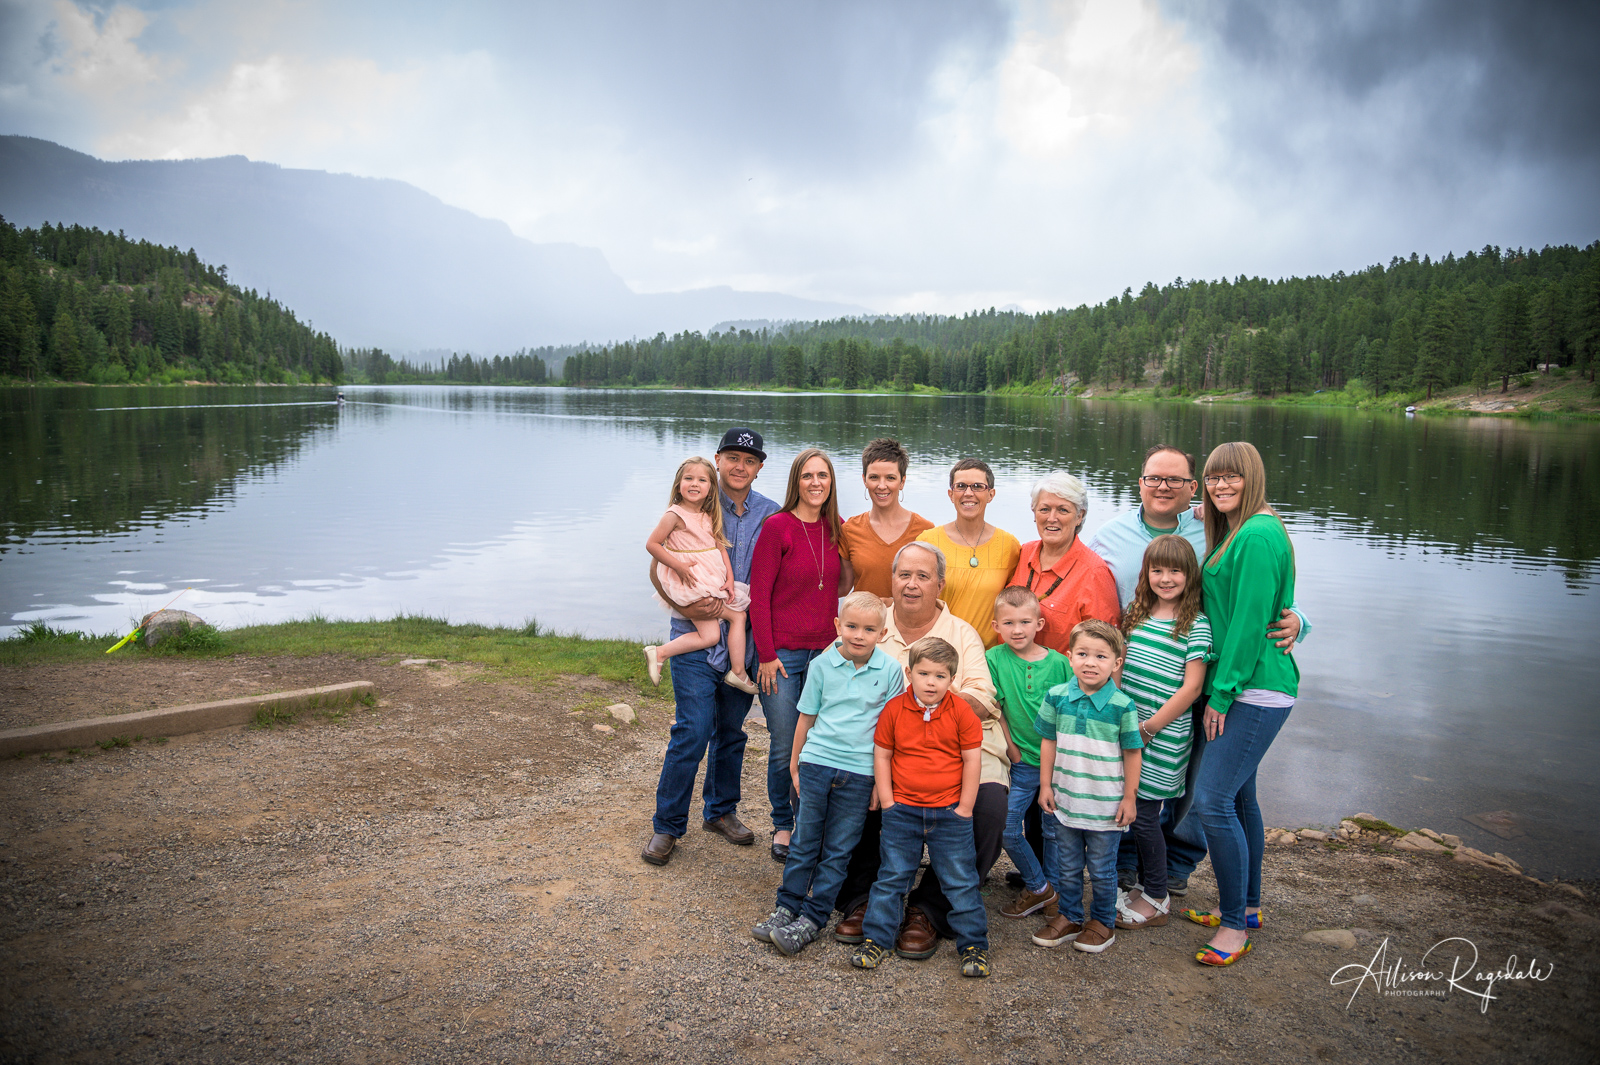 Nygren Family Portraits in Durango, CO